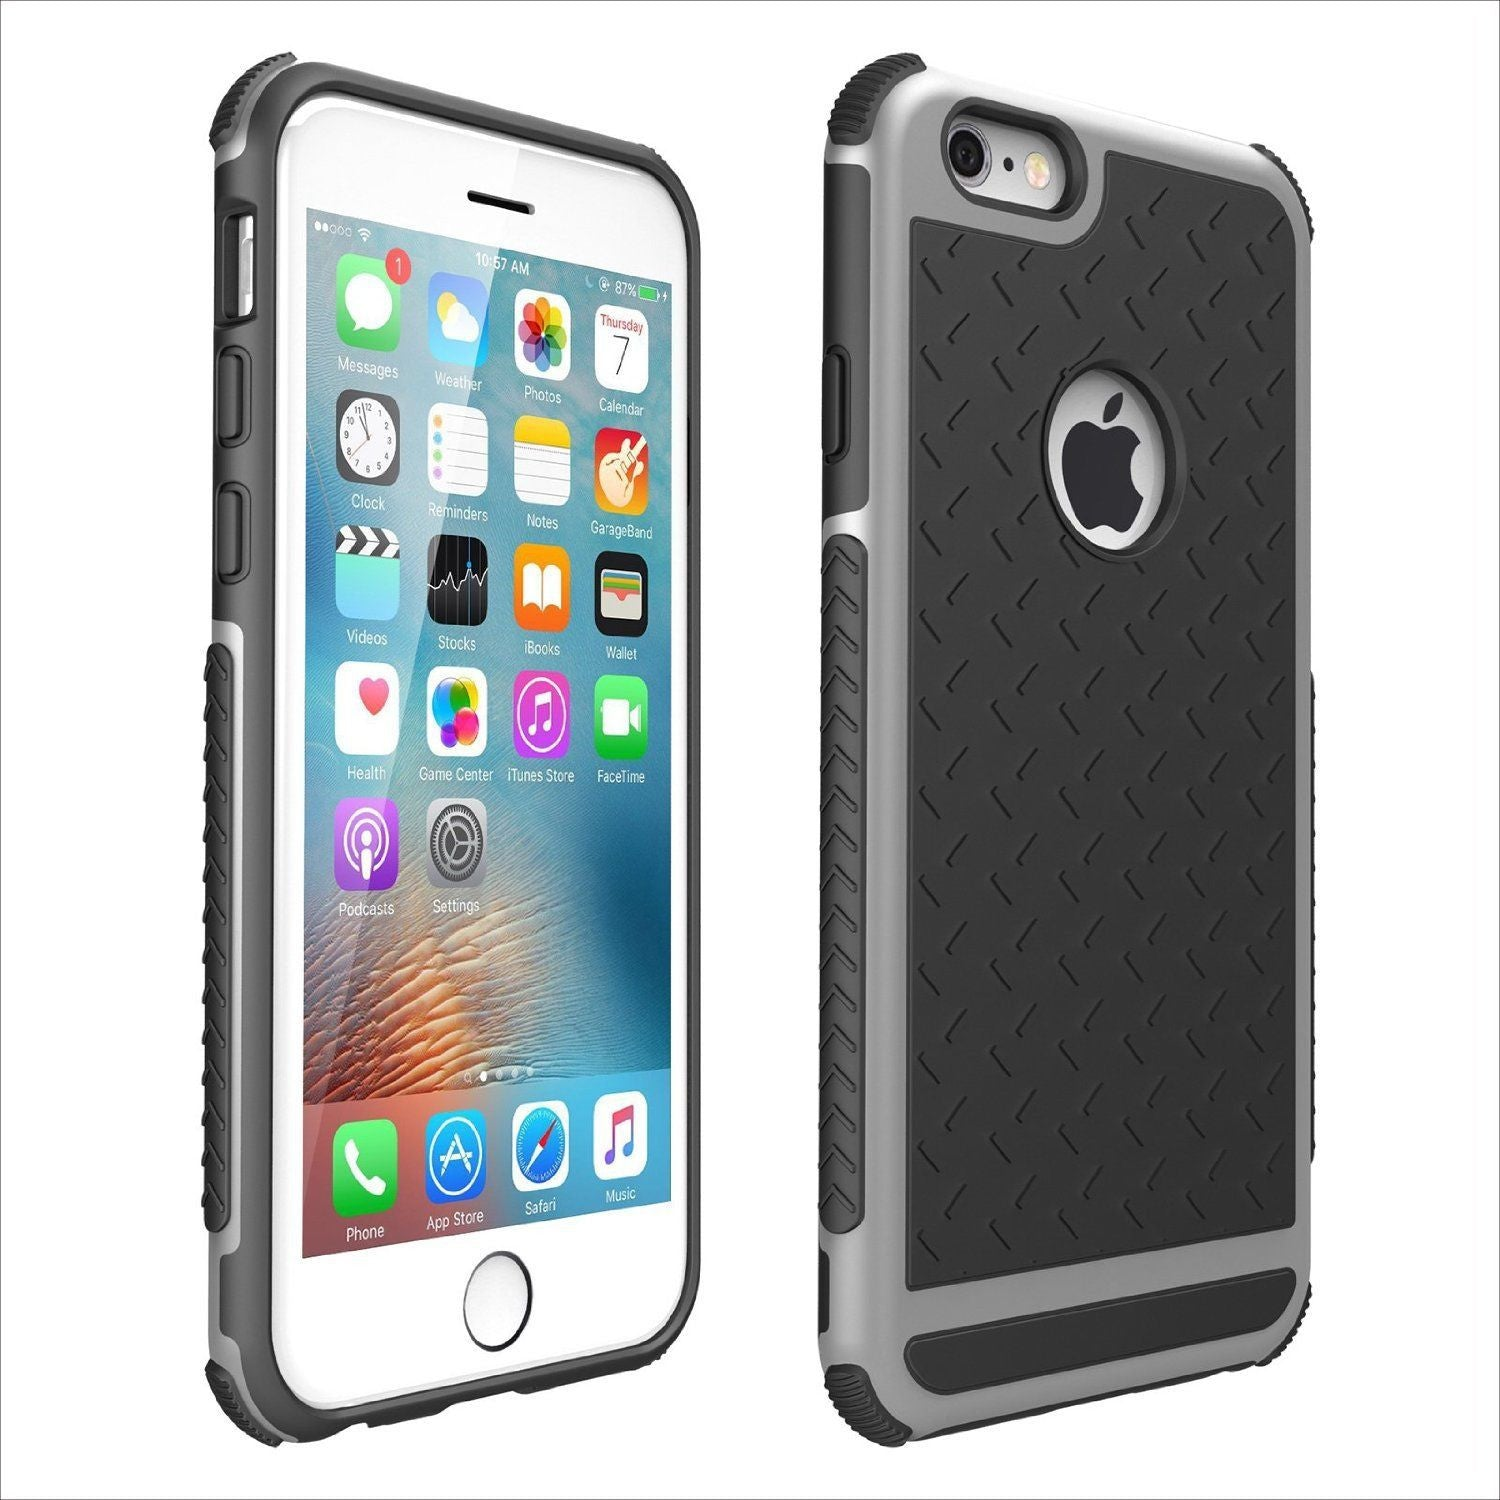 hot sale online 907f6 a90de Shockproof Rubber Hybrid Fashion Hard Case Thin Cover For Apple iPhone 6 6S  Plus